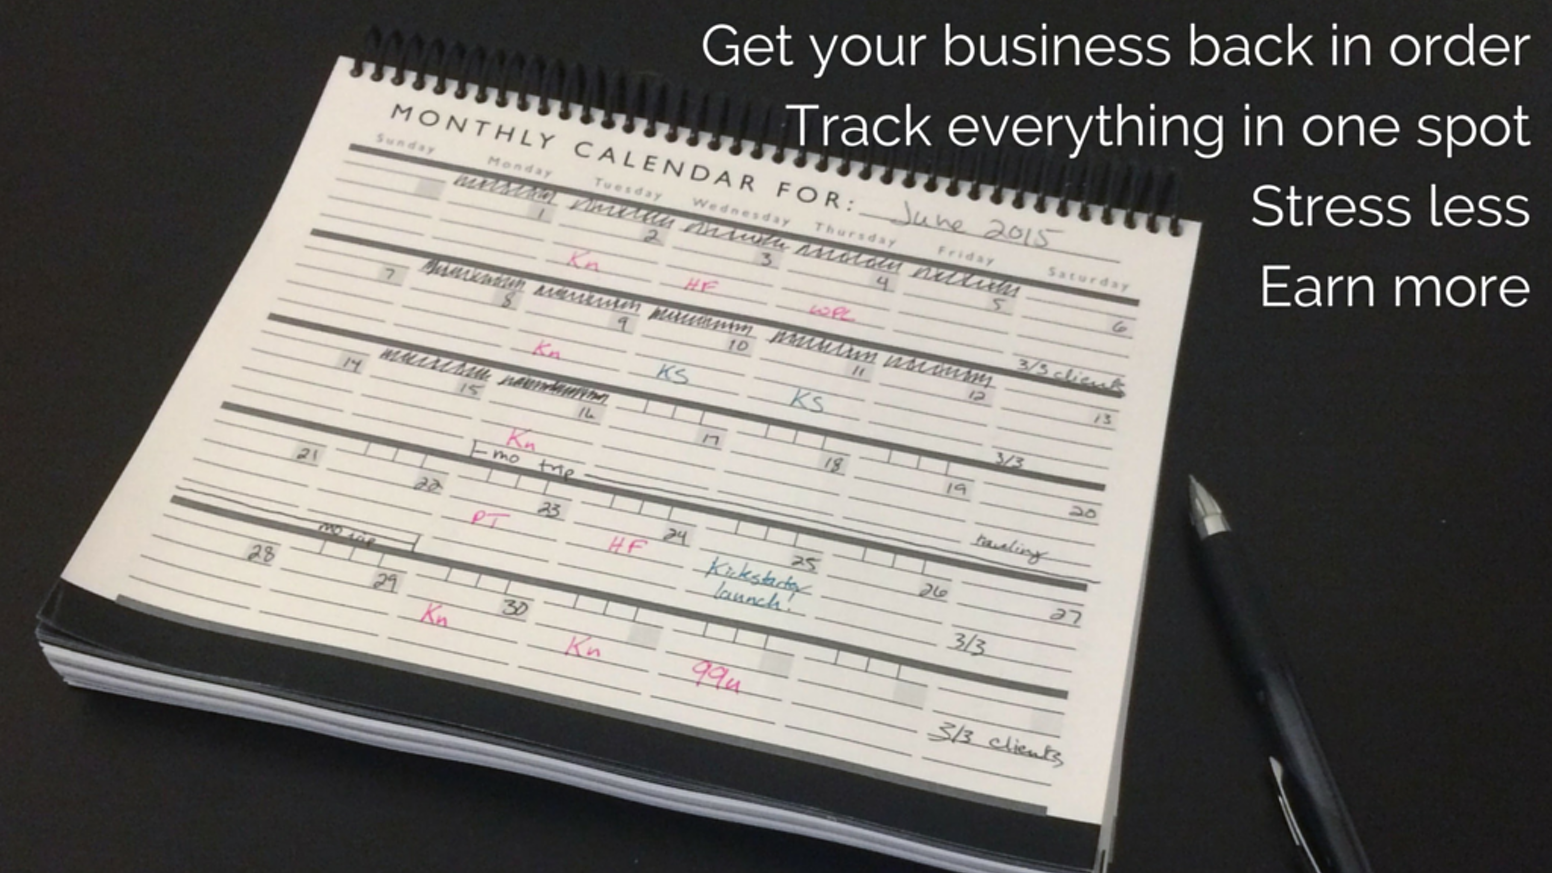 Track your income, client projects, tasks, & everything else in one planner, while learning better business habits.